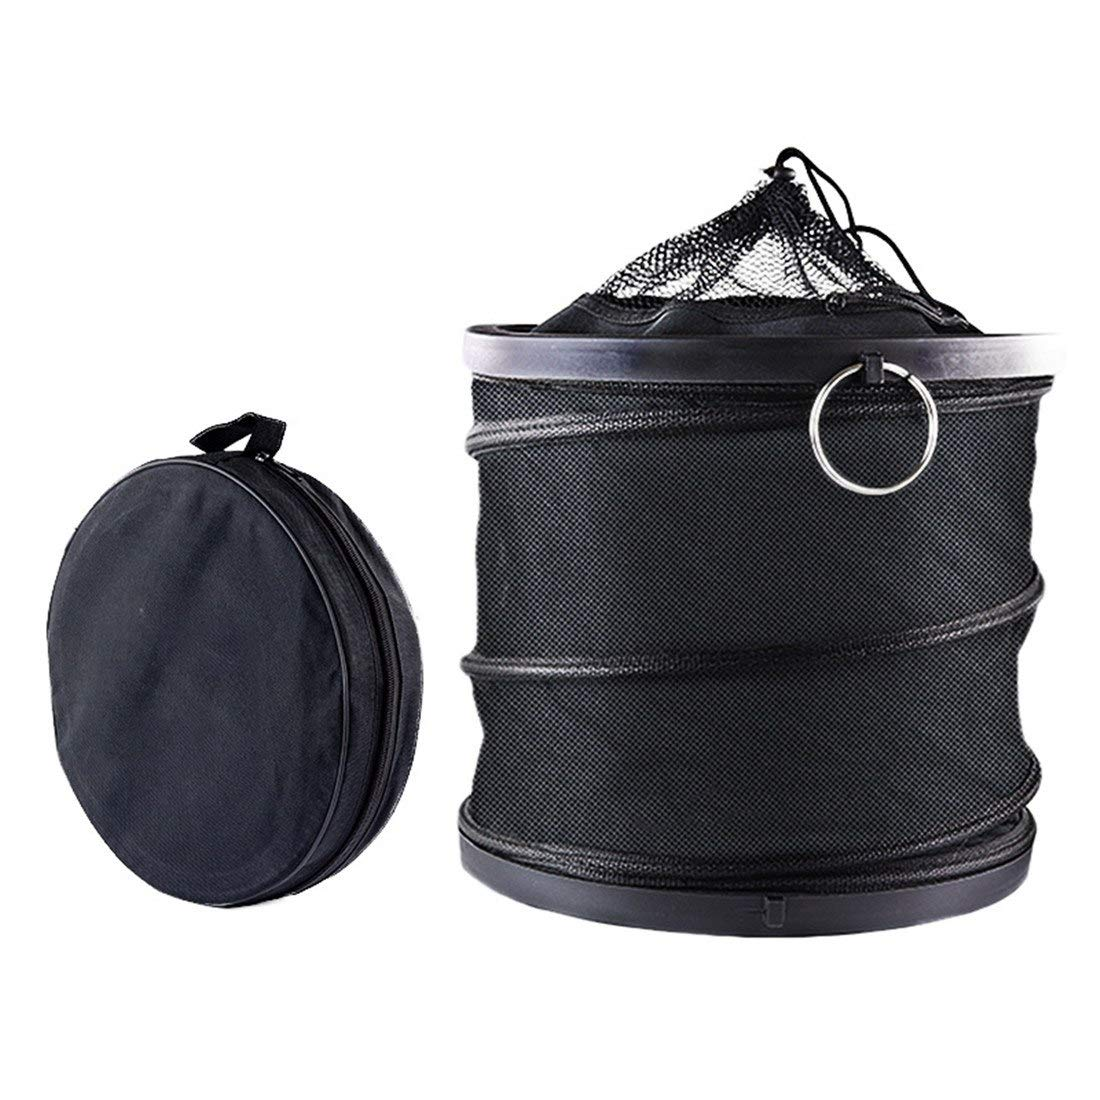 Autopeck Collapsible Bucket Multipurpose Folding Car Wash Fishing Oxford 12L Large Capacity Barrel Storage Household Picnic Easy to Store Compact Container Lightweight Durable Handy Pocket Black